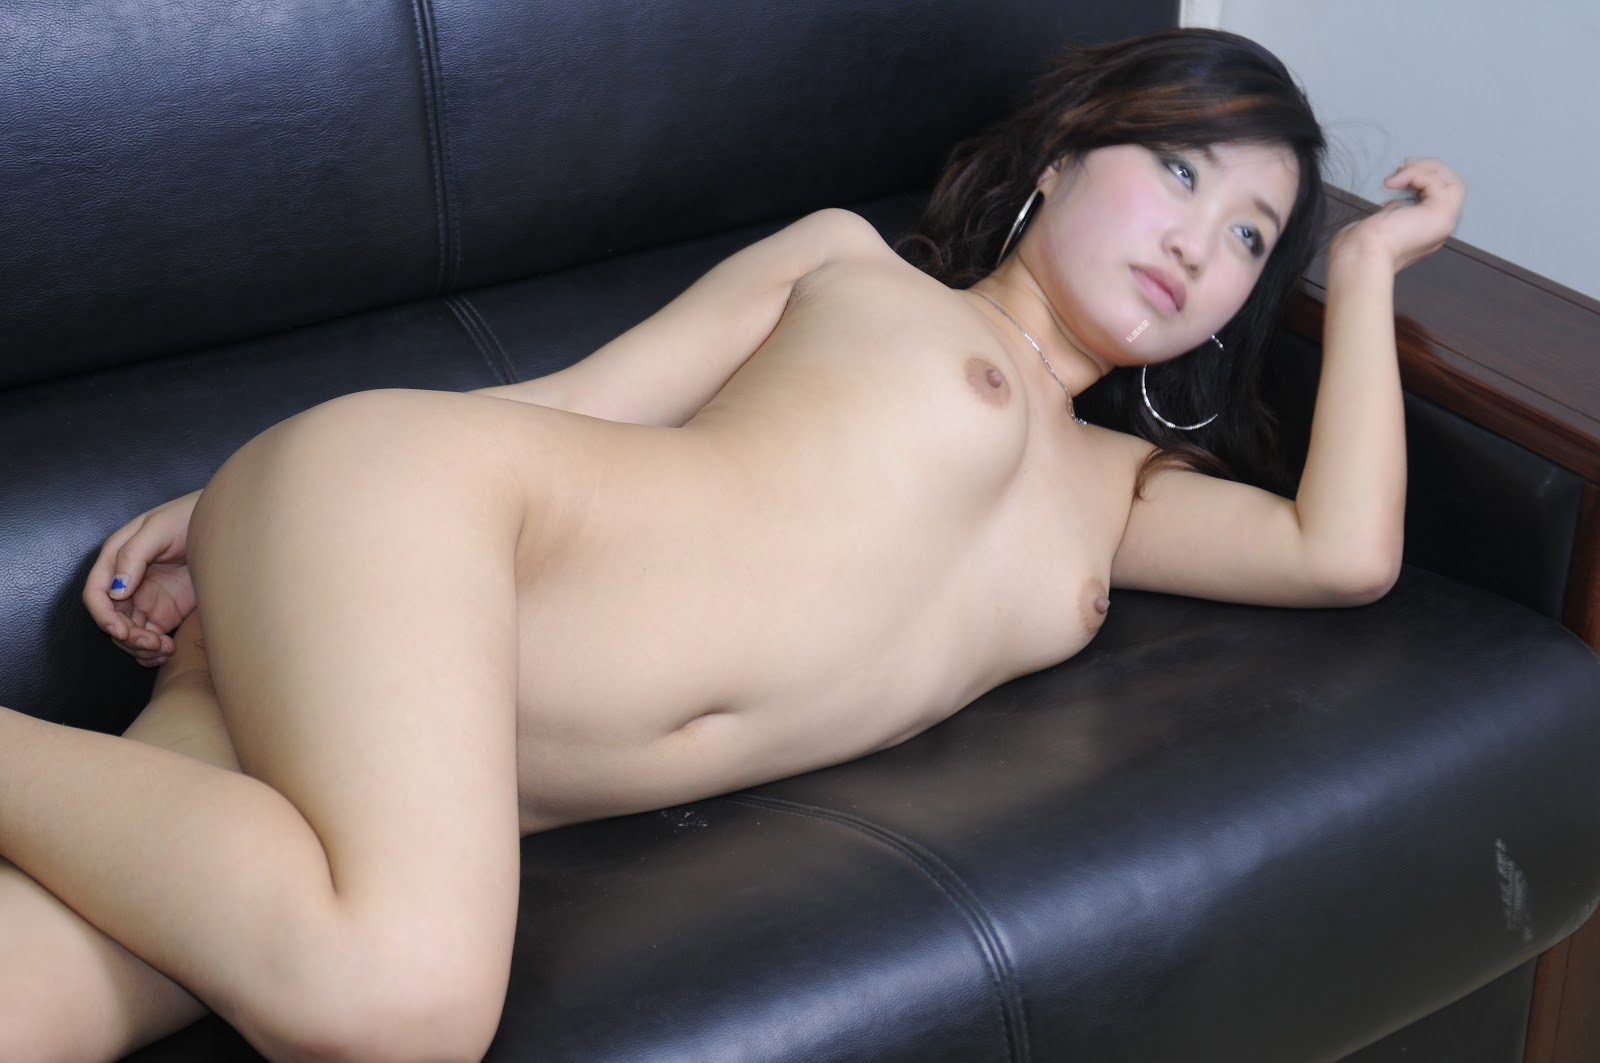 Chinese Nude_Art_Photos_-_200_-_XiaJi.rar chinese 07040